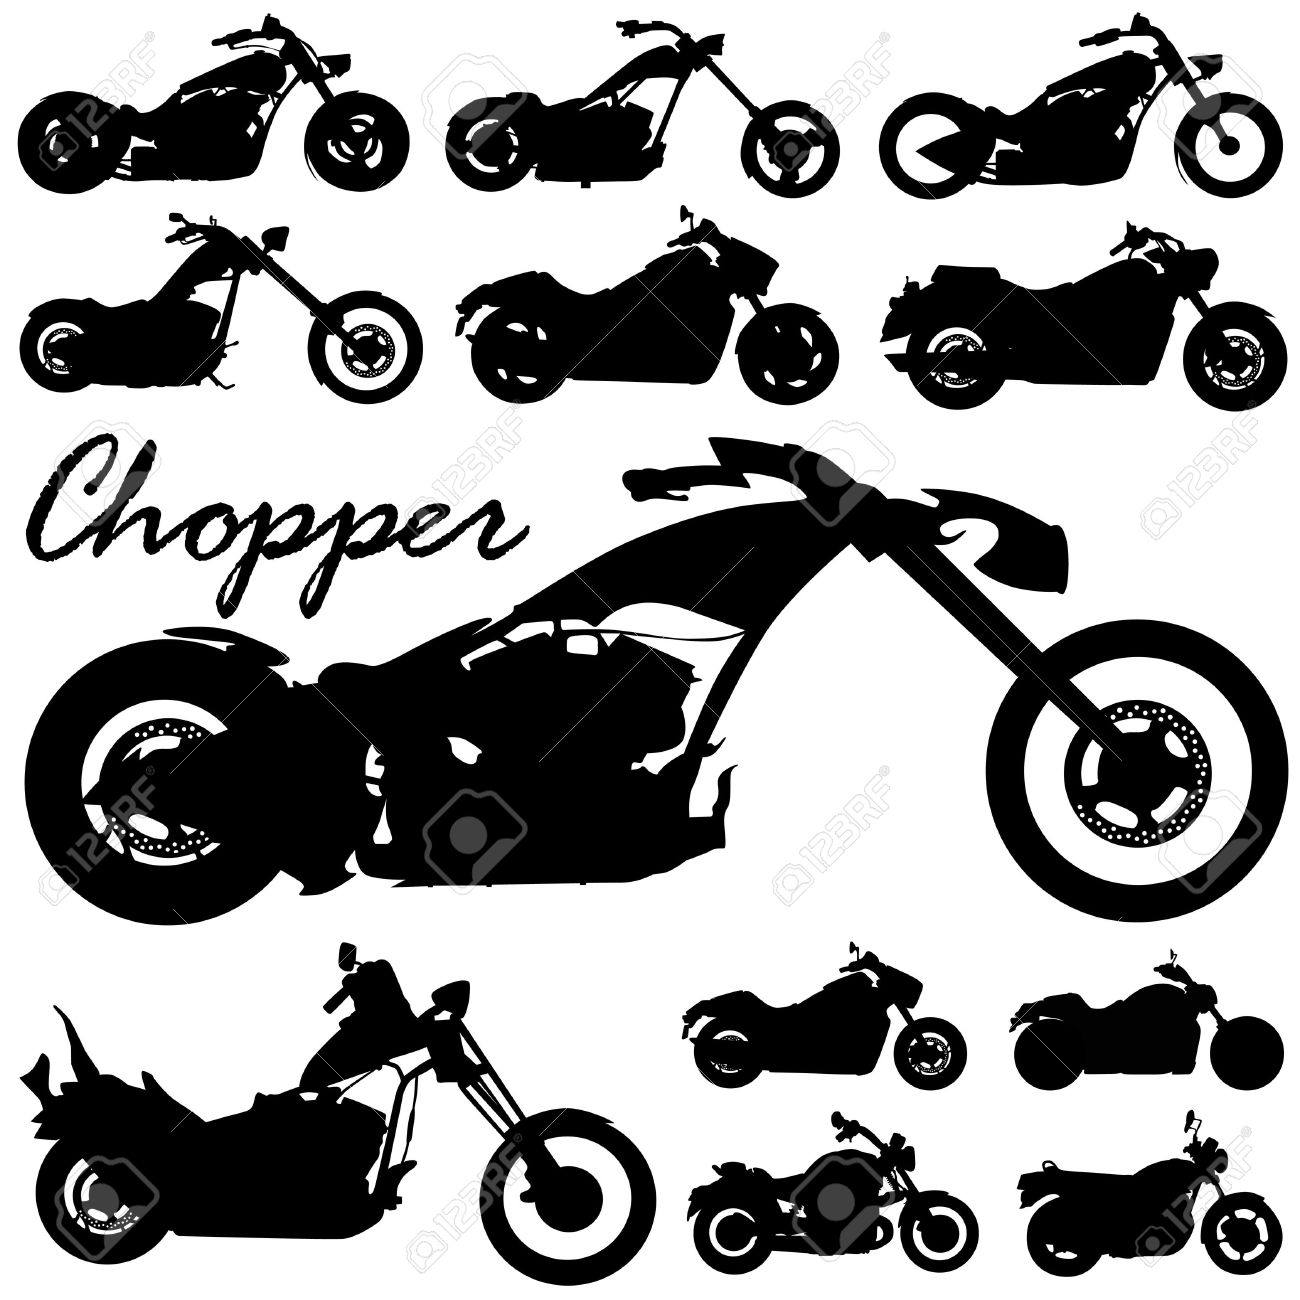 Chopper Motorcycle Vector Royalty Free Cliparts, Vectors, And.